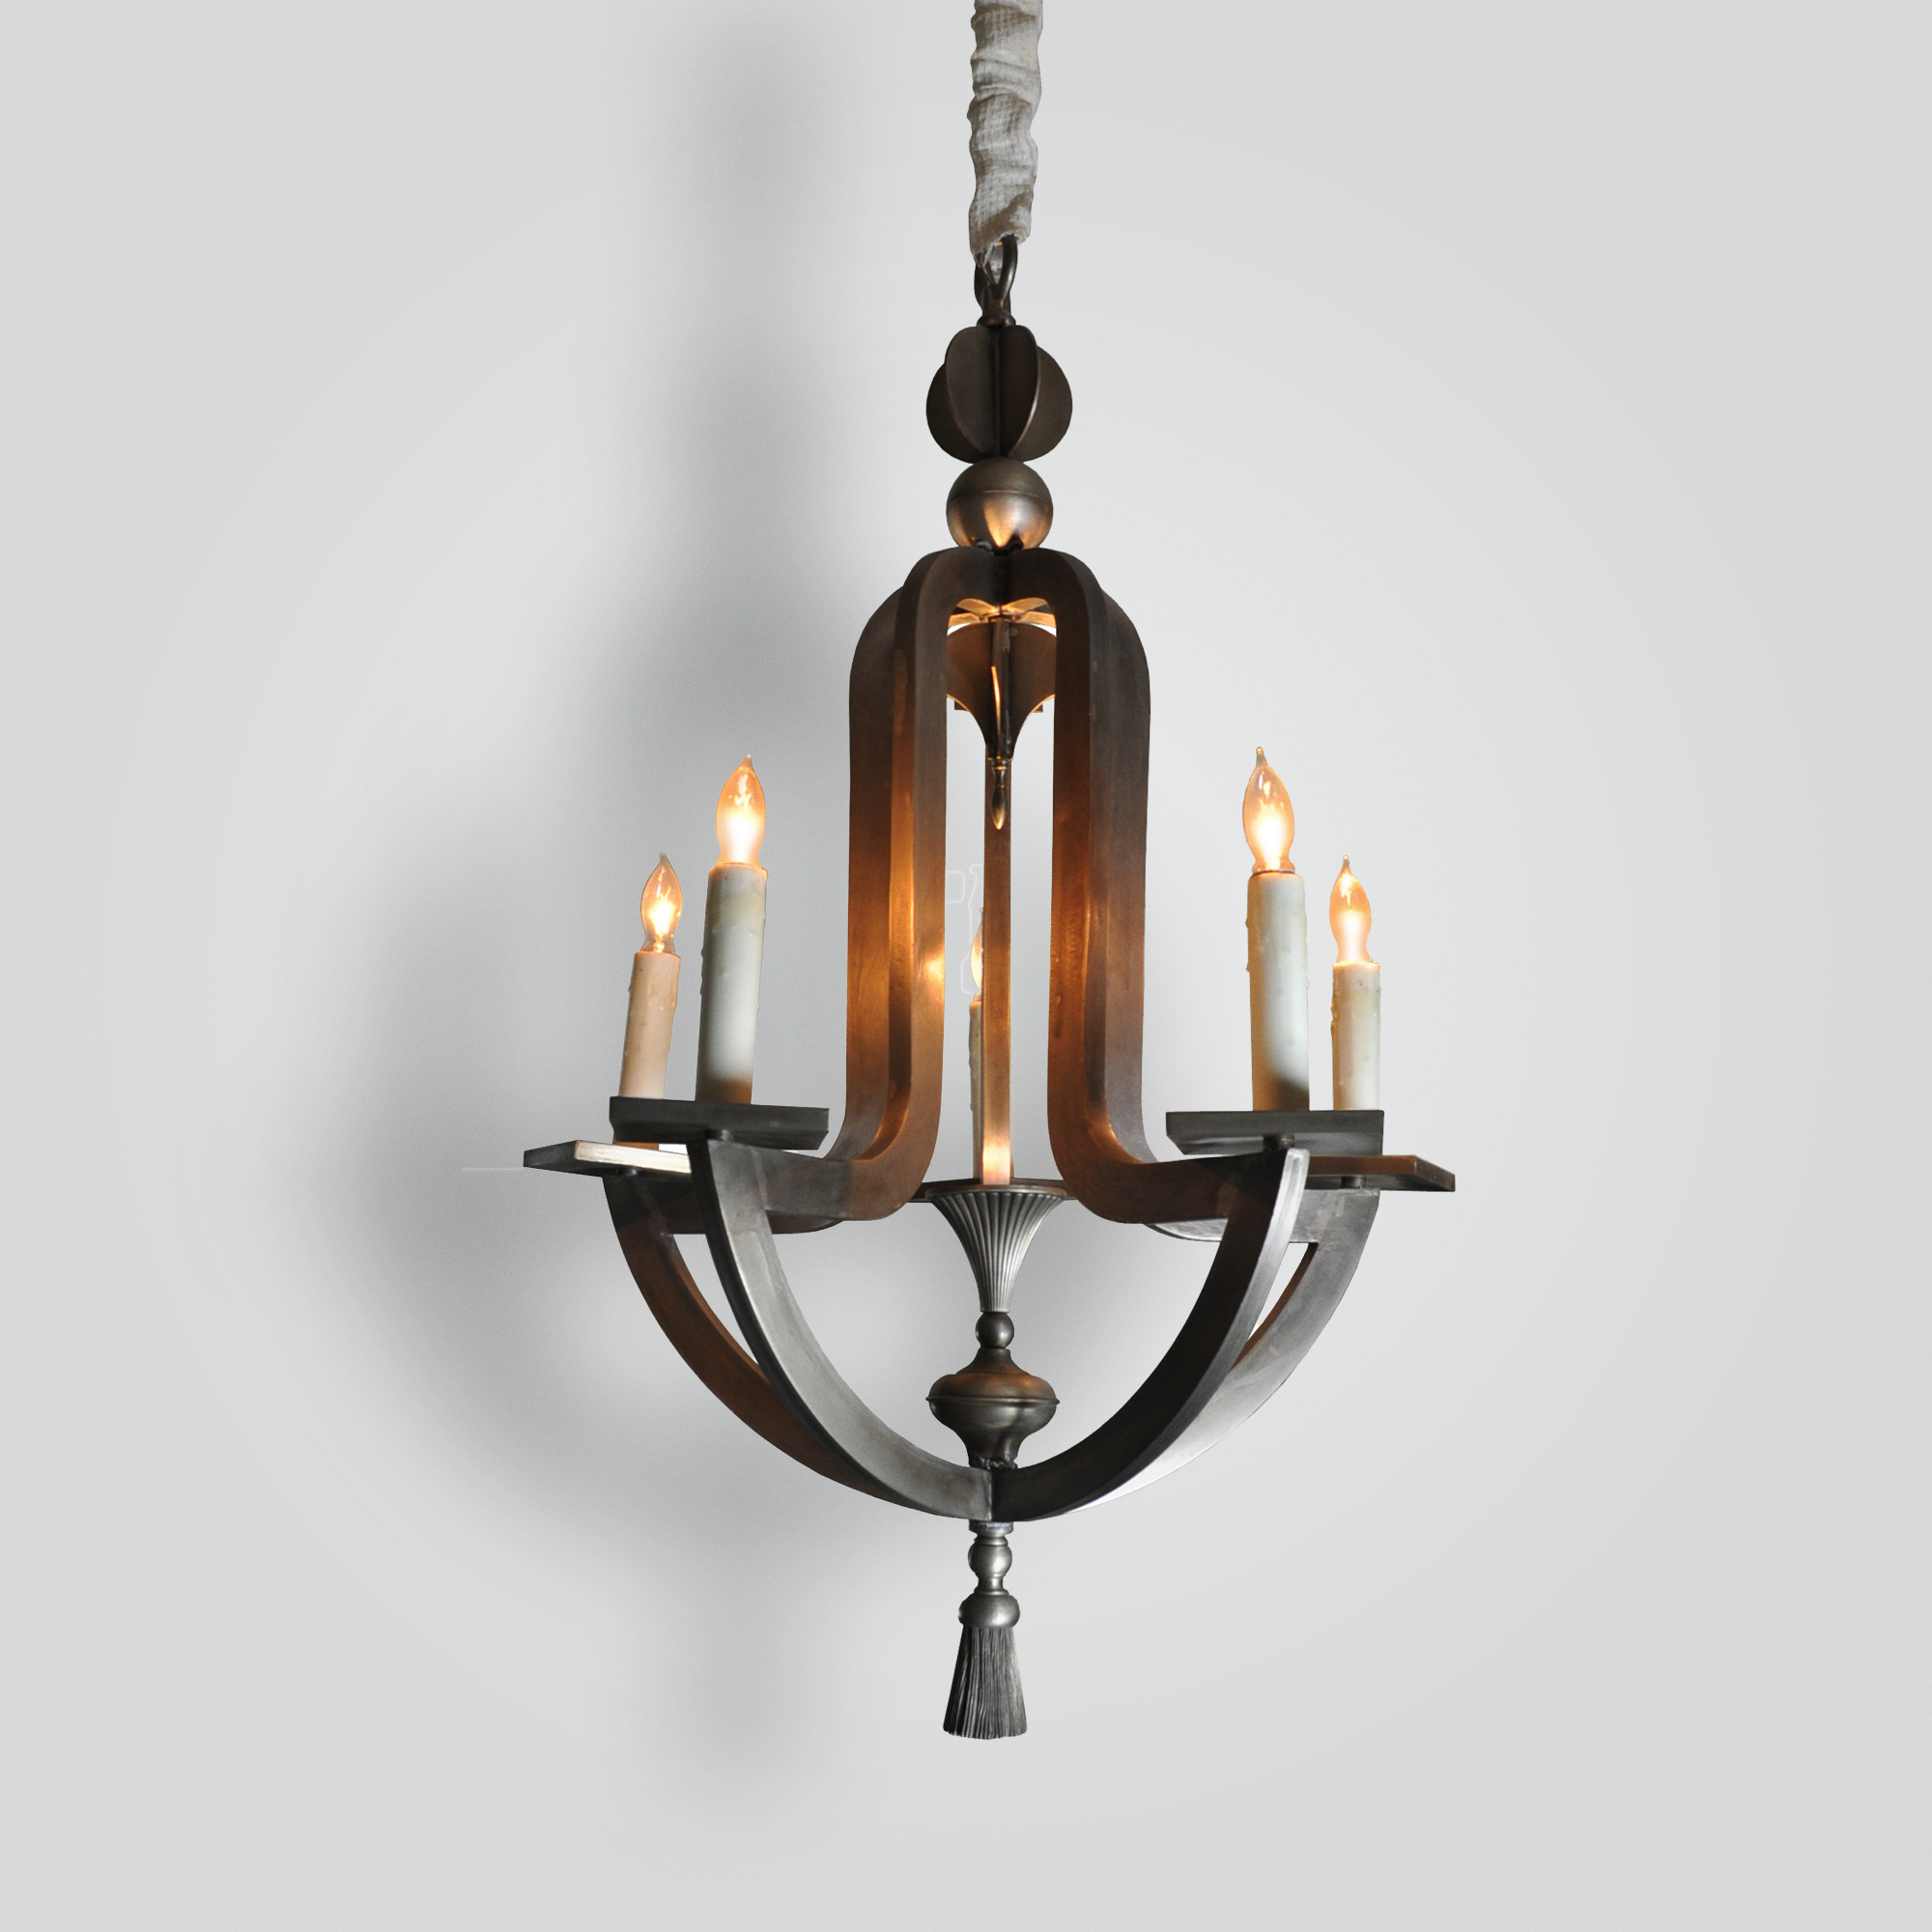 22468-mb5-br-h-sh-hand-made-pewter-finished-chandelier-with-led-uplight – ADG Lighting Collection